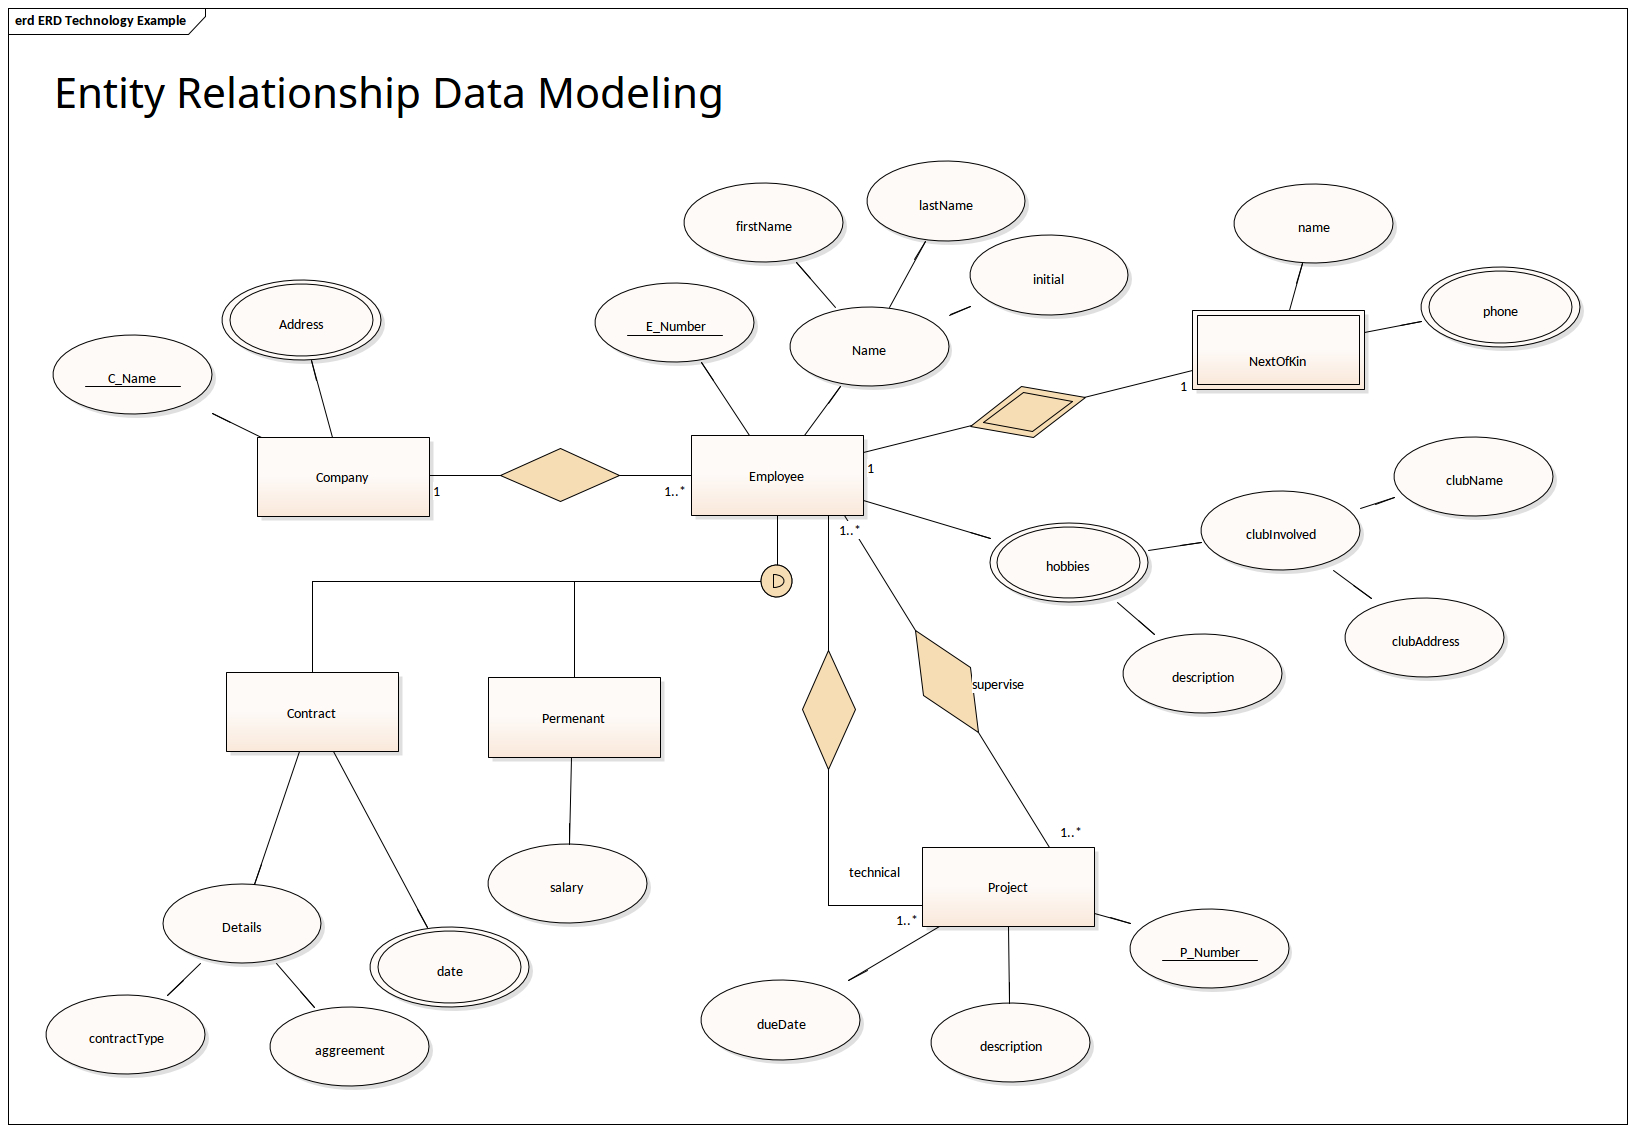 Entity Relationship Data Modeling | Enterprise Architect throughout Entity Relationship Diagram Connectors